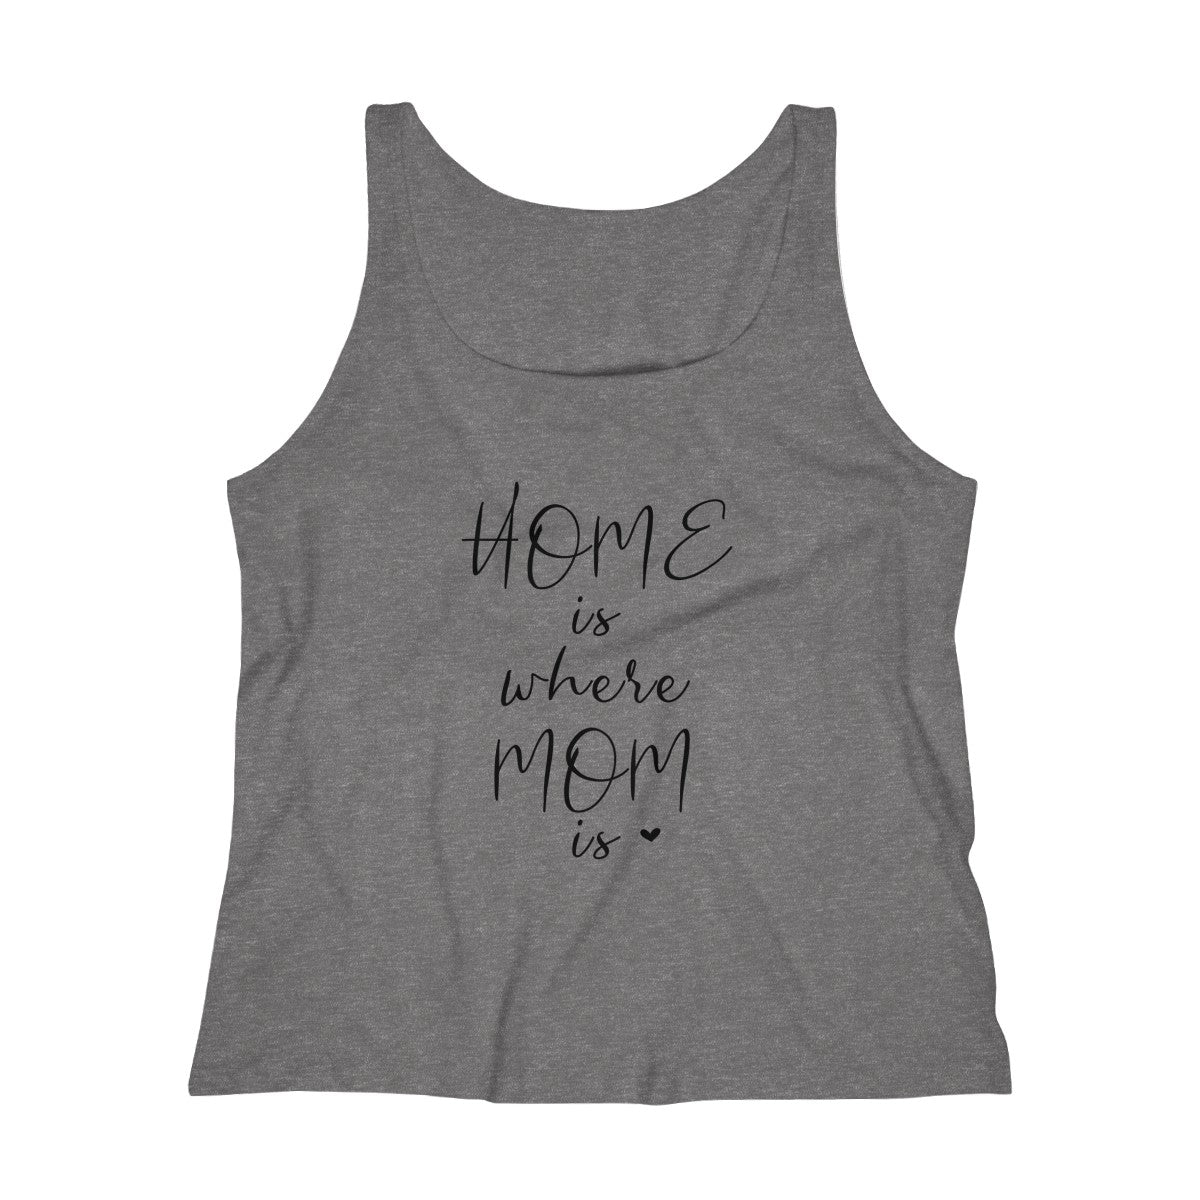 Home is Where Mom is Relaxed Jersey Tank